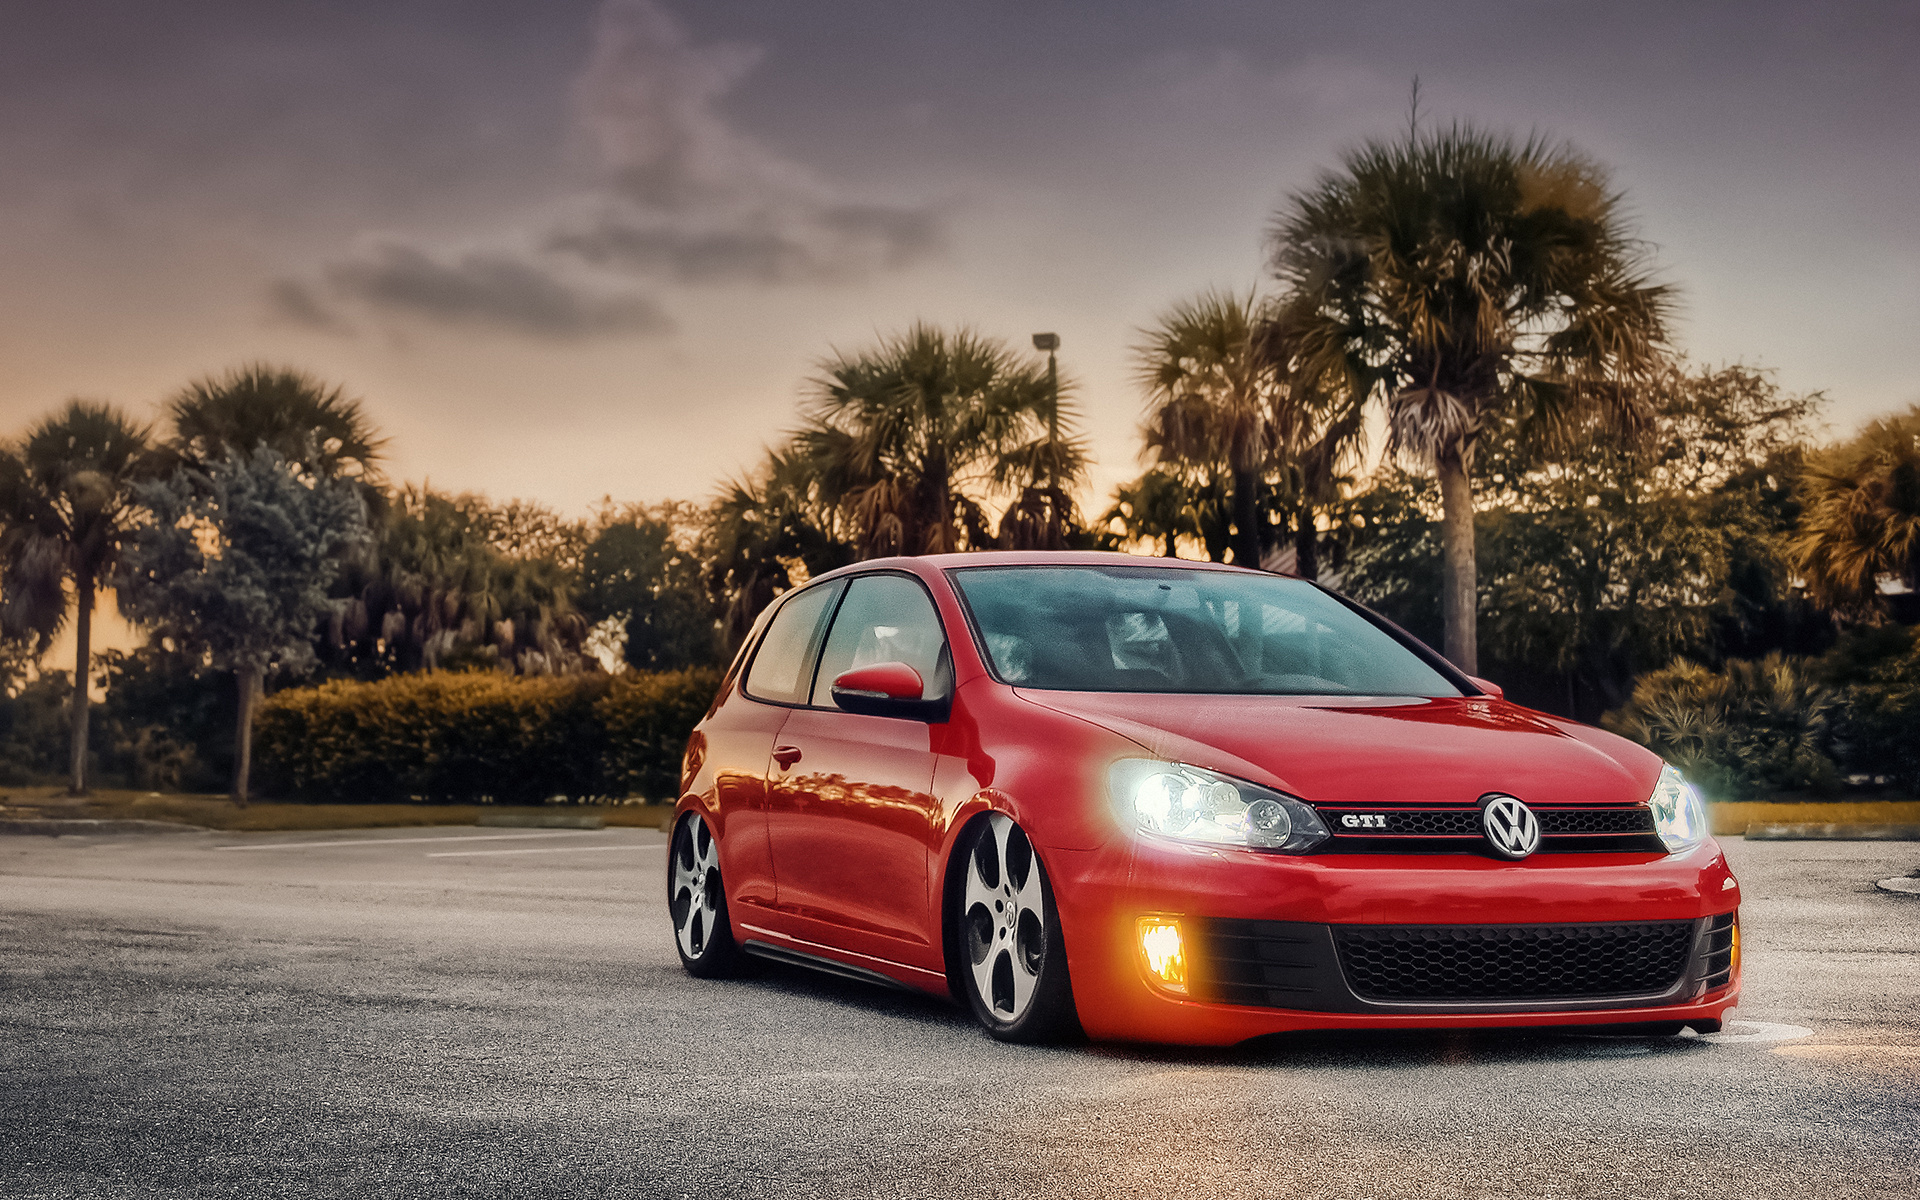 Stunning Gti Wallpaper